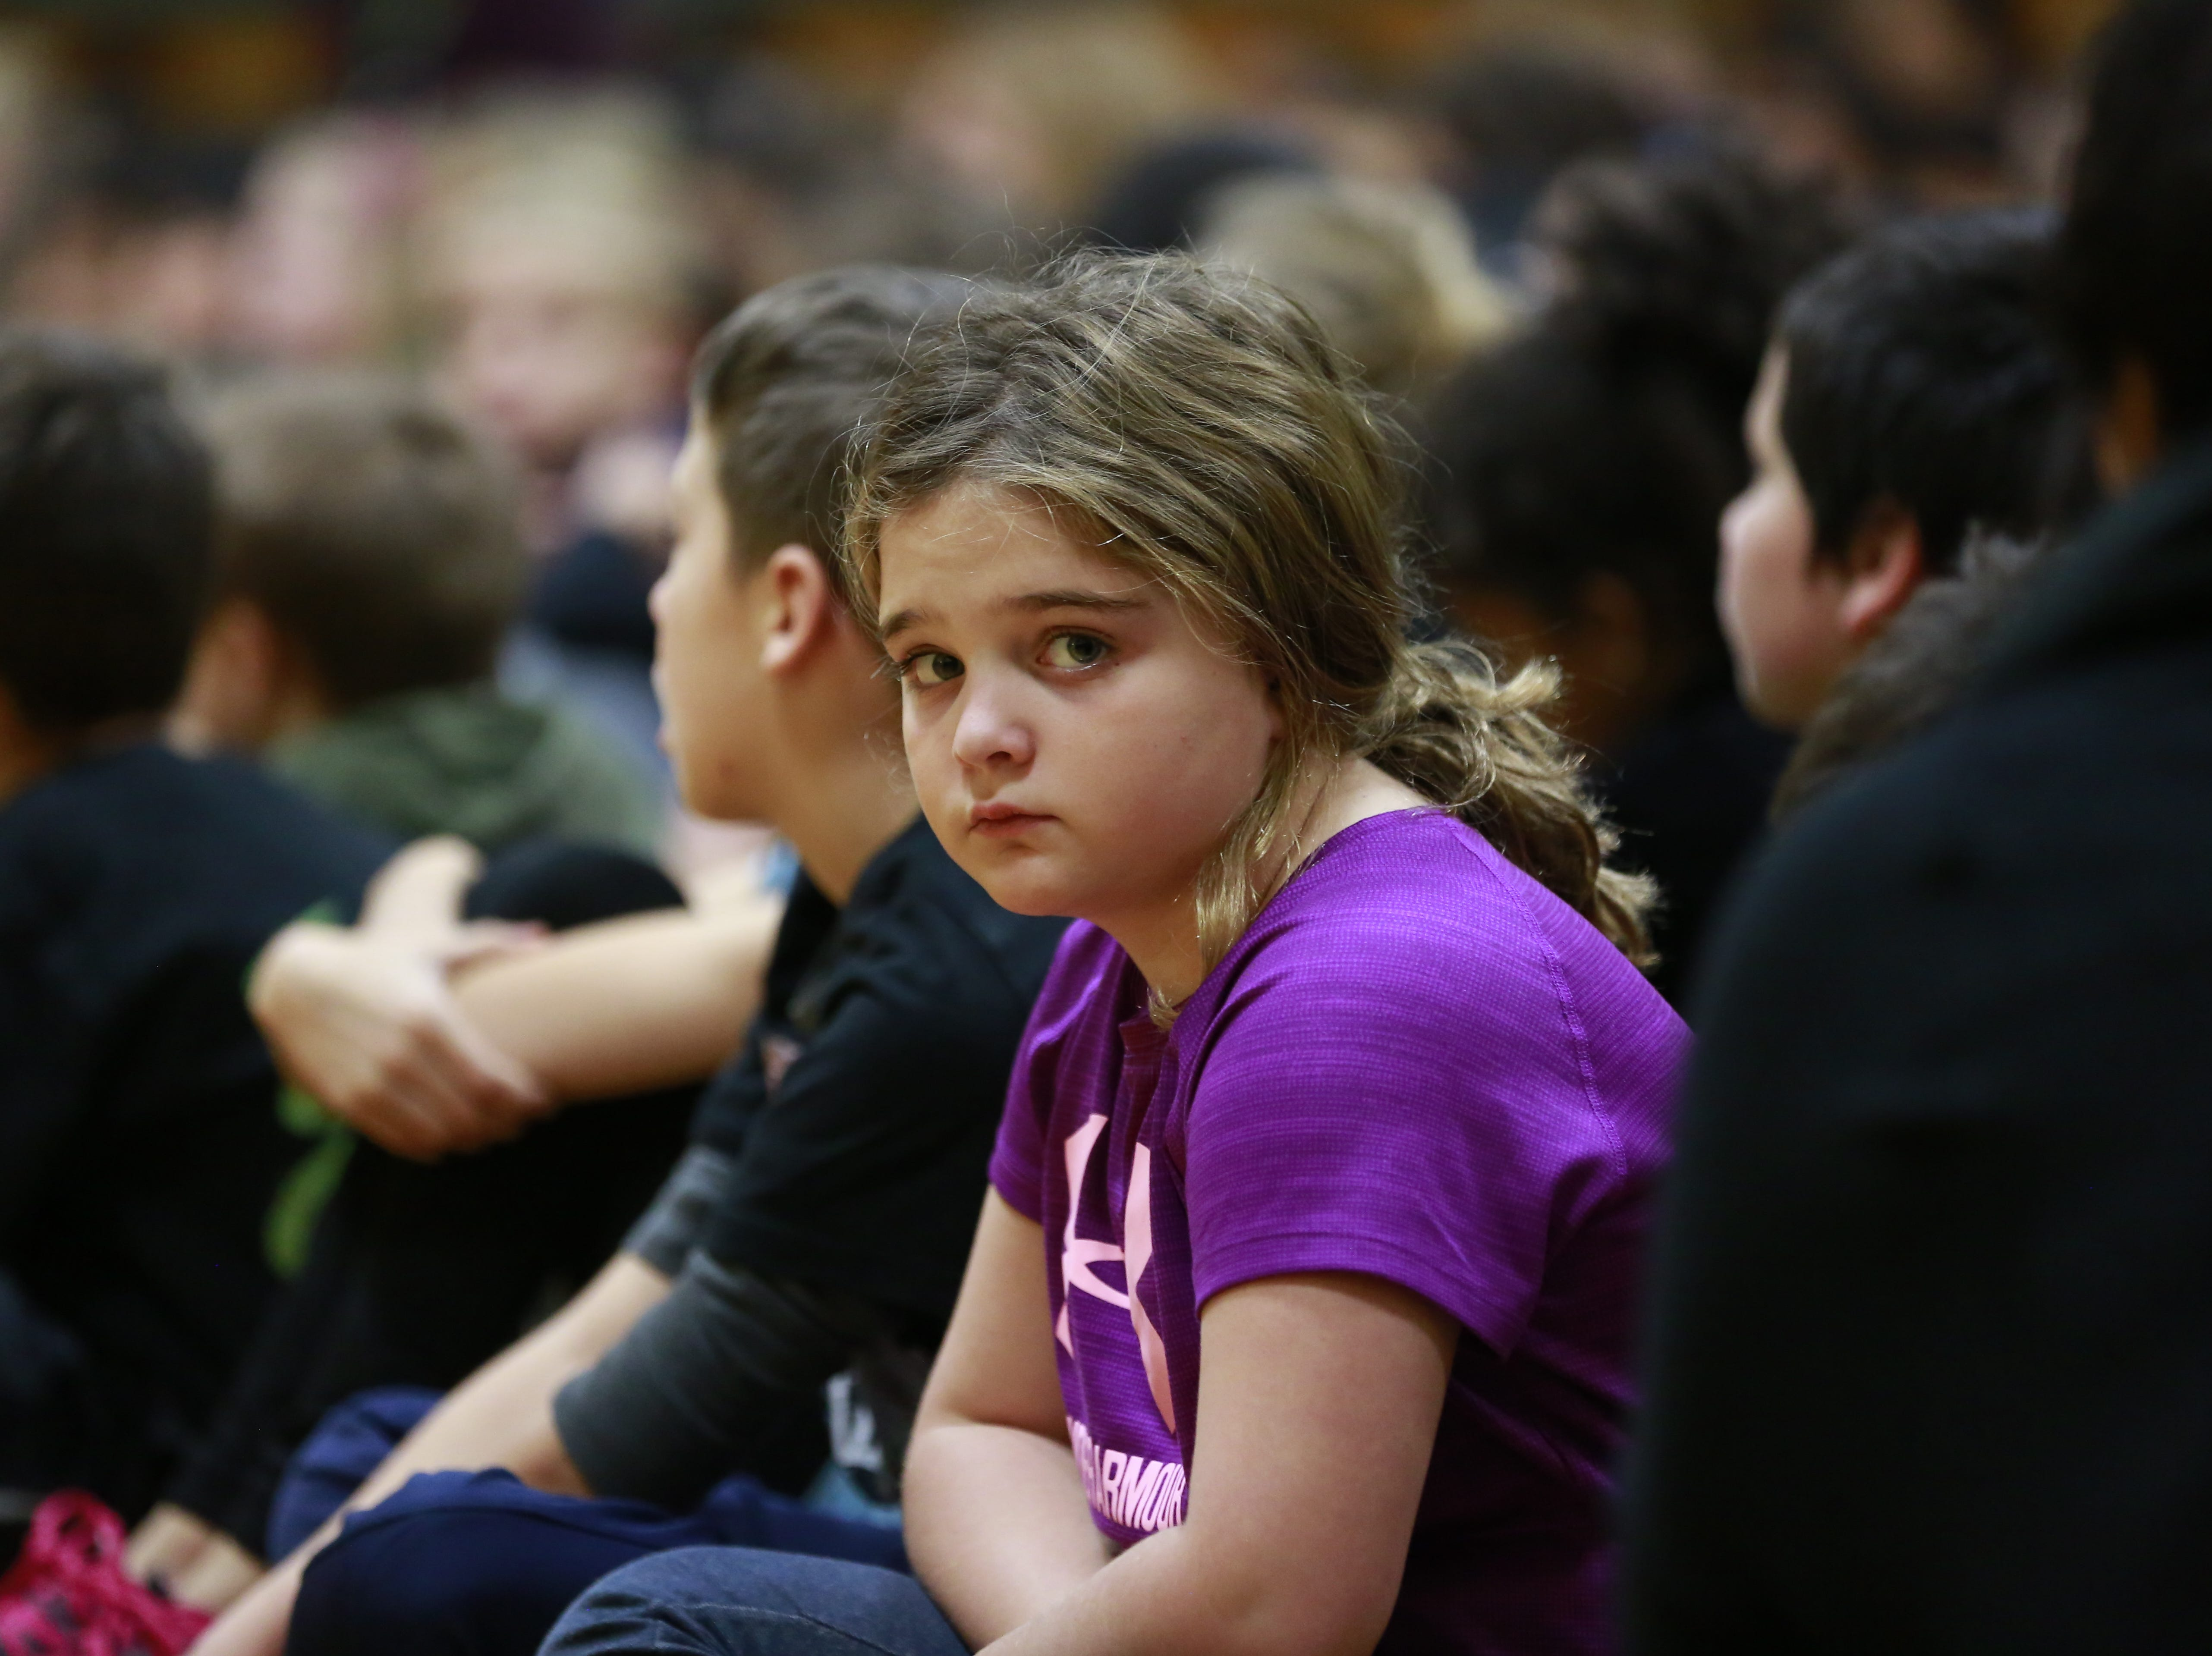 A student looks on the camera Monday, Oct. 15, 2018, during the Anti-Bullying Relentless Tour to Visit Wisconsin at Weston Elementary School in Weston, Wis. T'xer Zhon Kha/USA TODAY NETWORK-Wisconsin